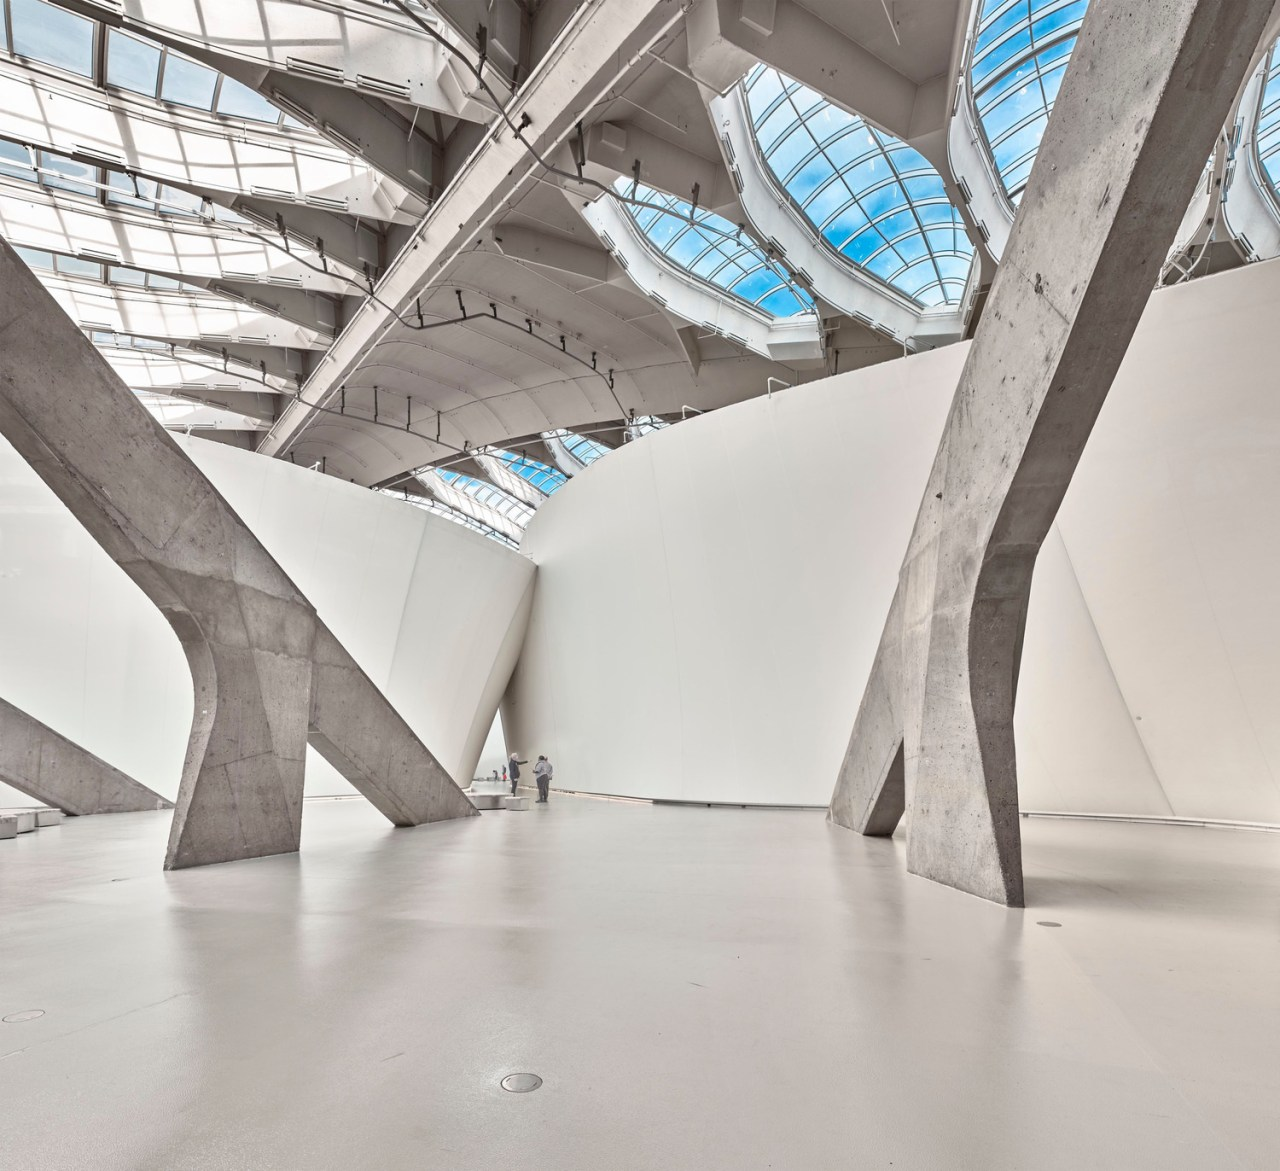 Dwarfed by natural science – the Entrance Hall